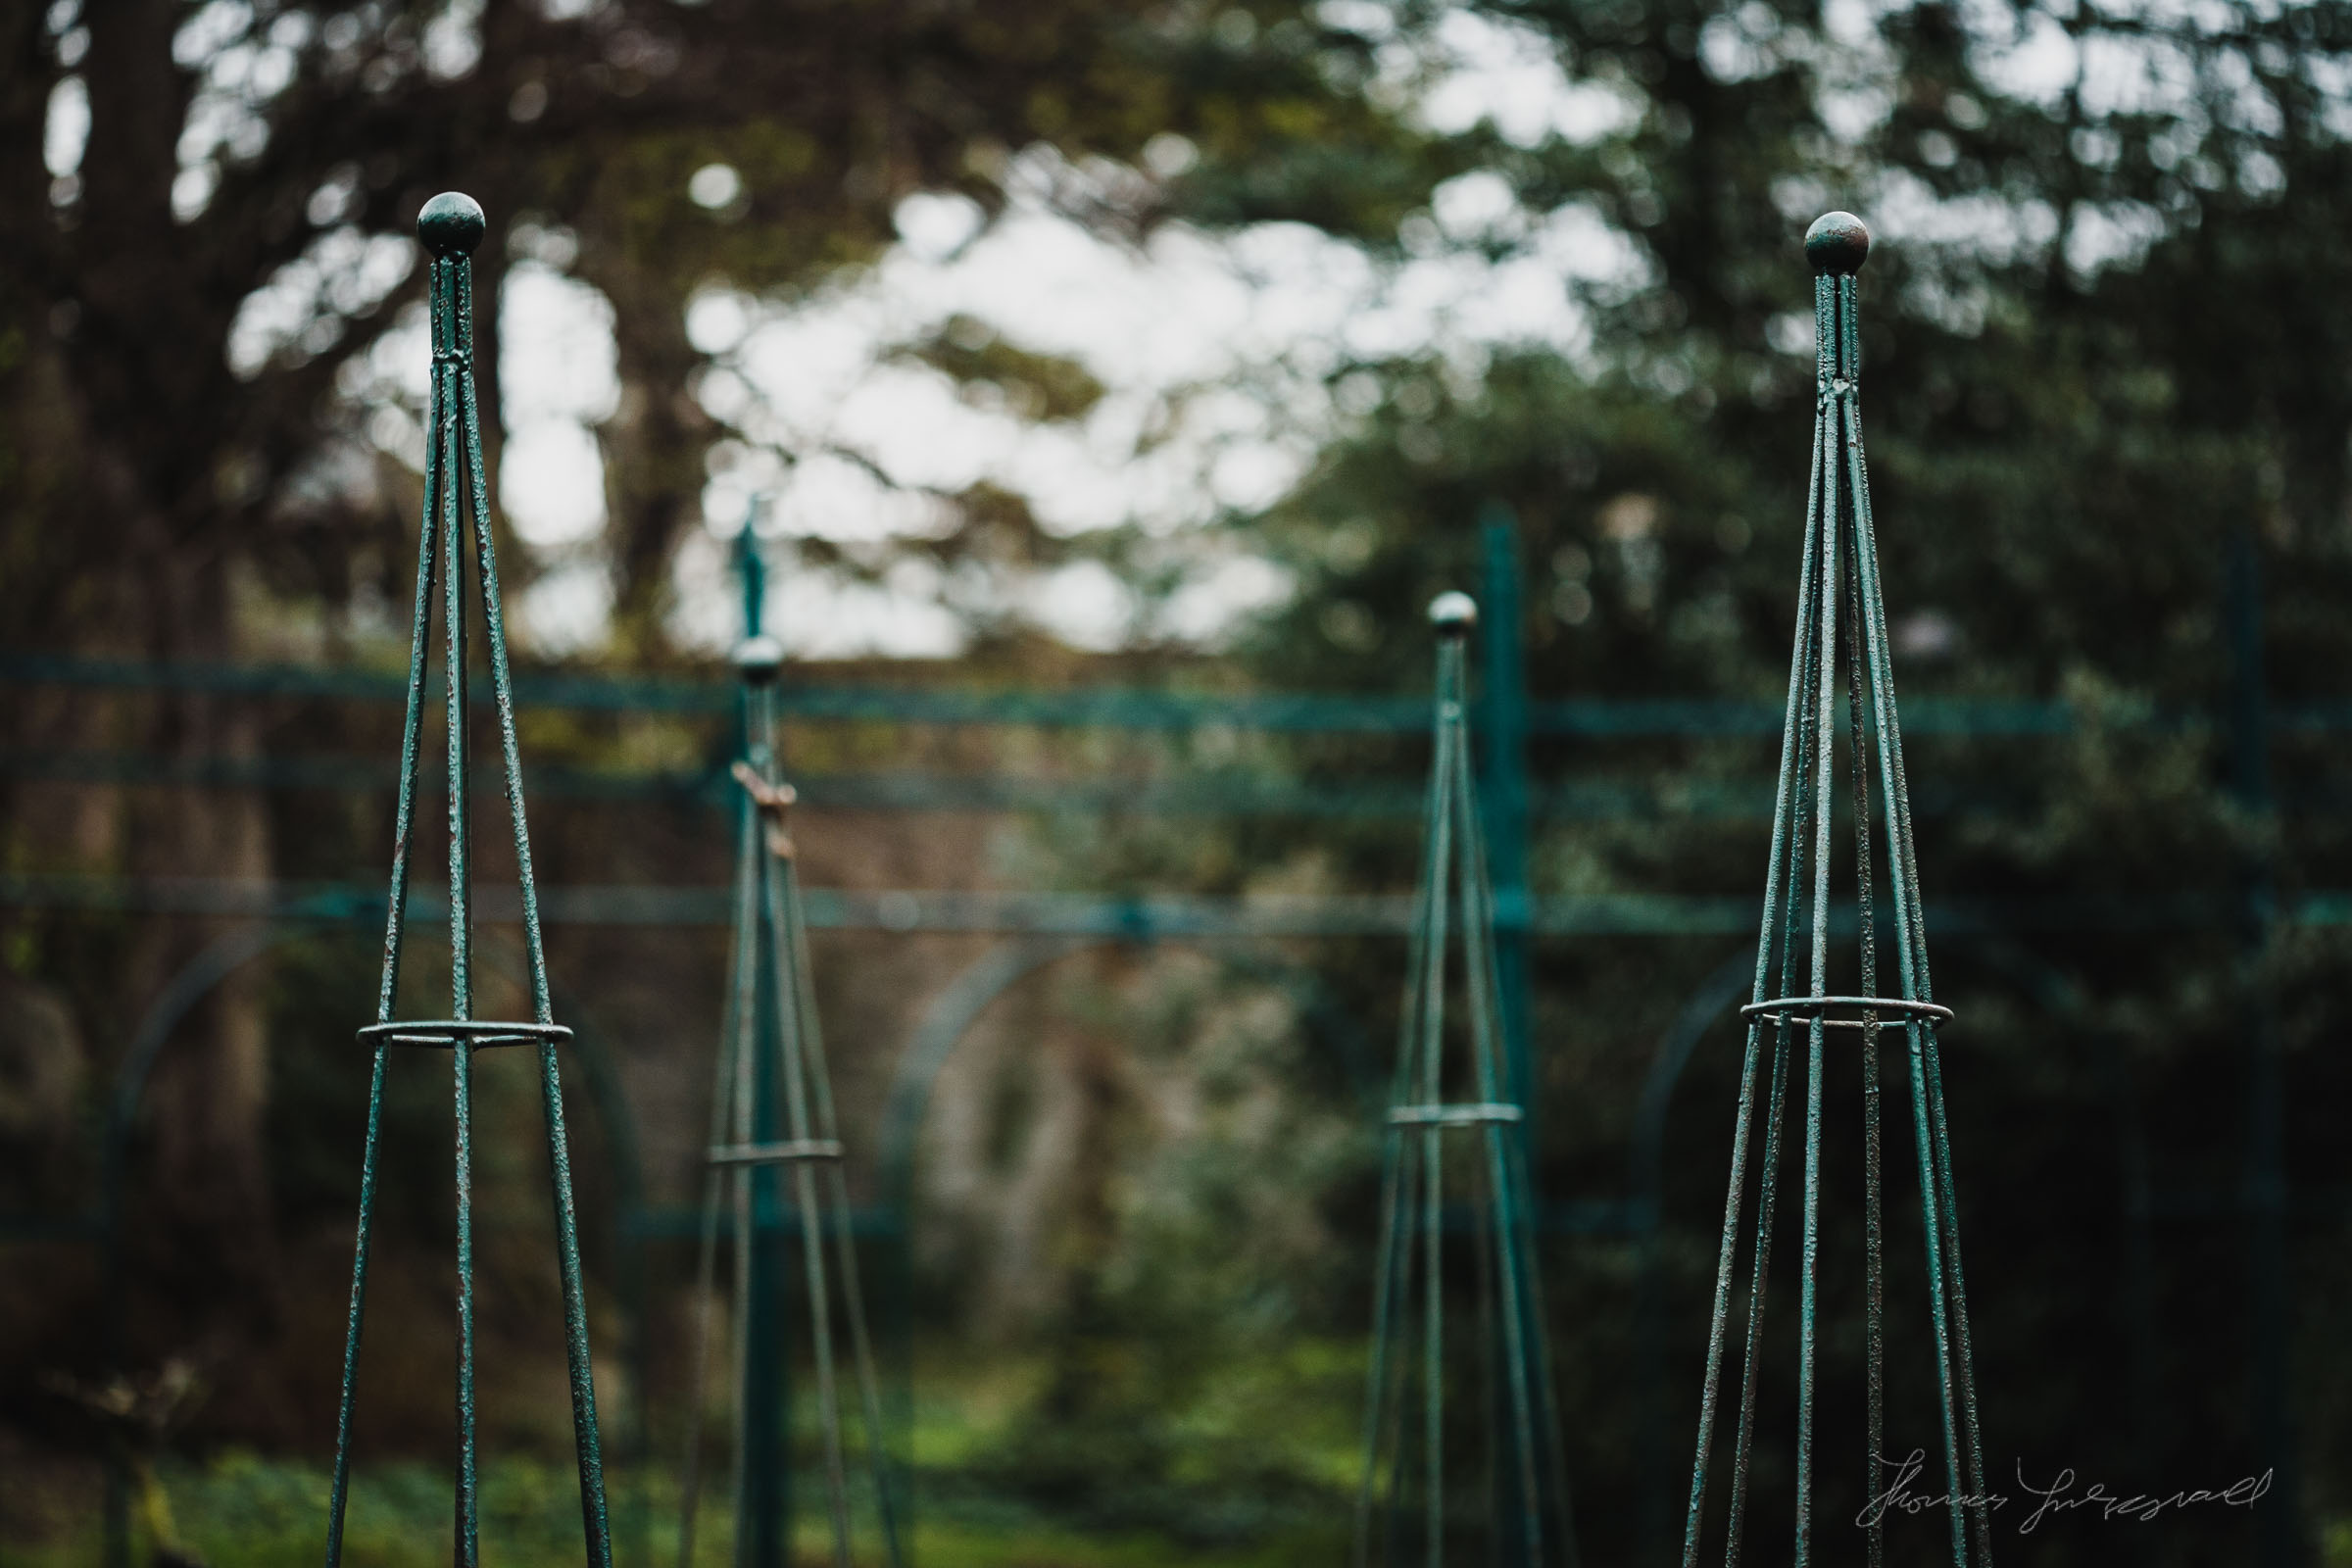 Posts for the rose bushes to grow around in Iveagh Gardens, Dublin